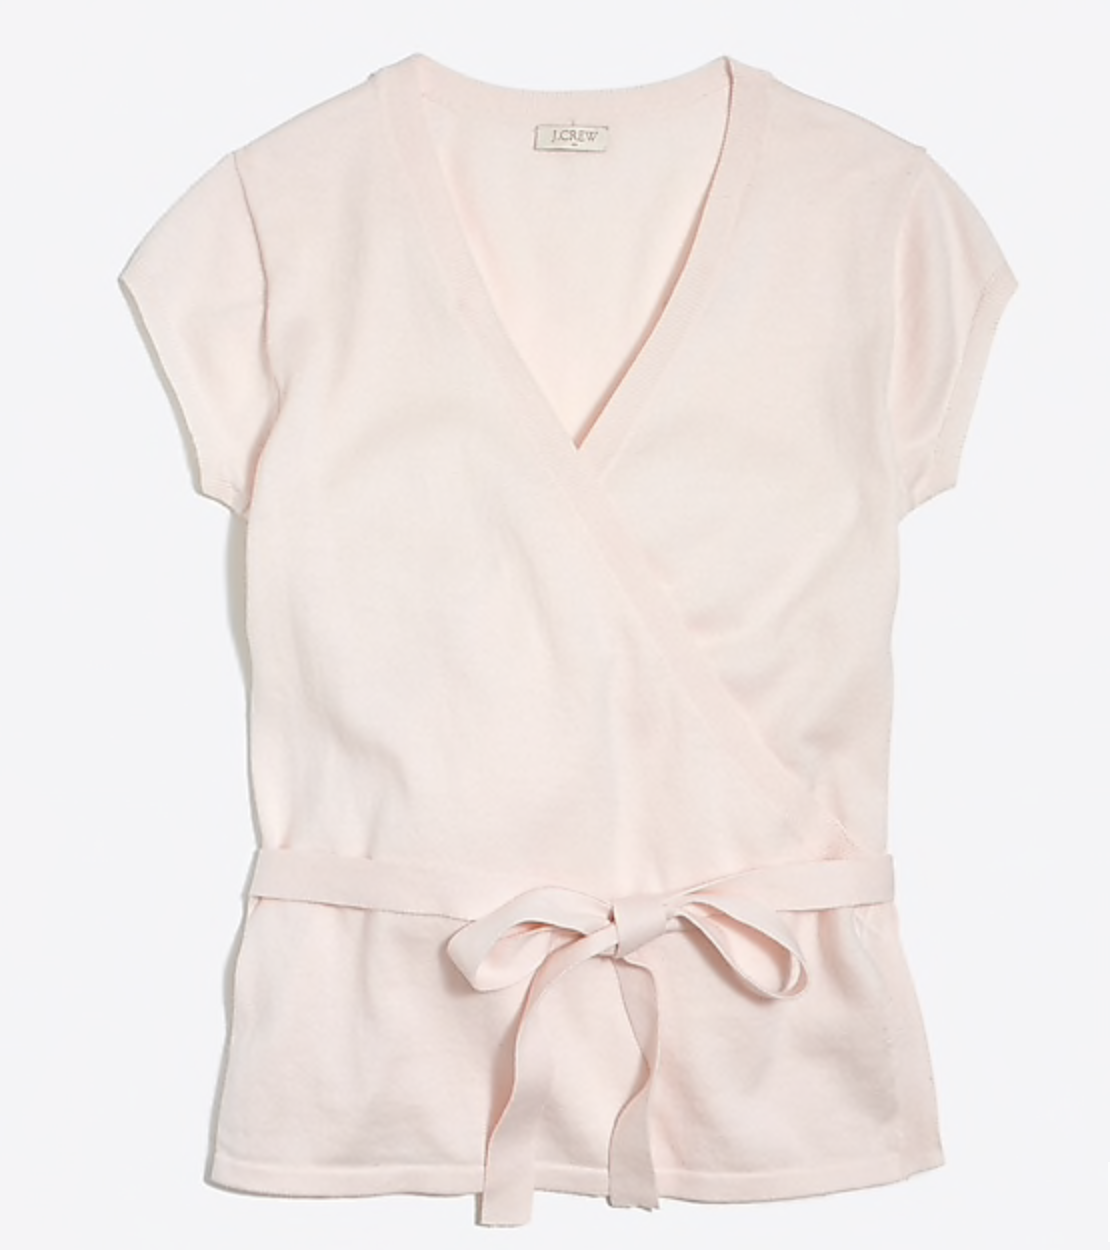 perfect blouse for office on clearance